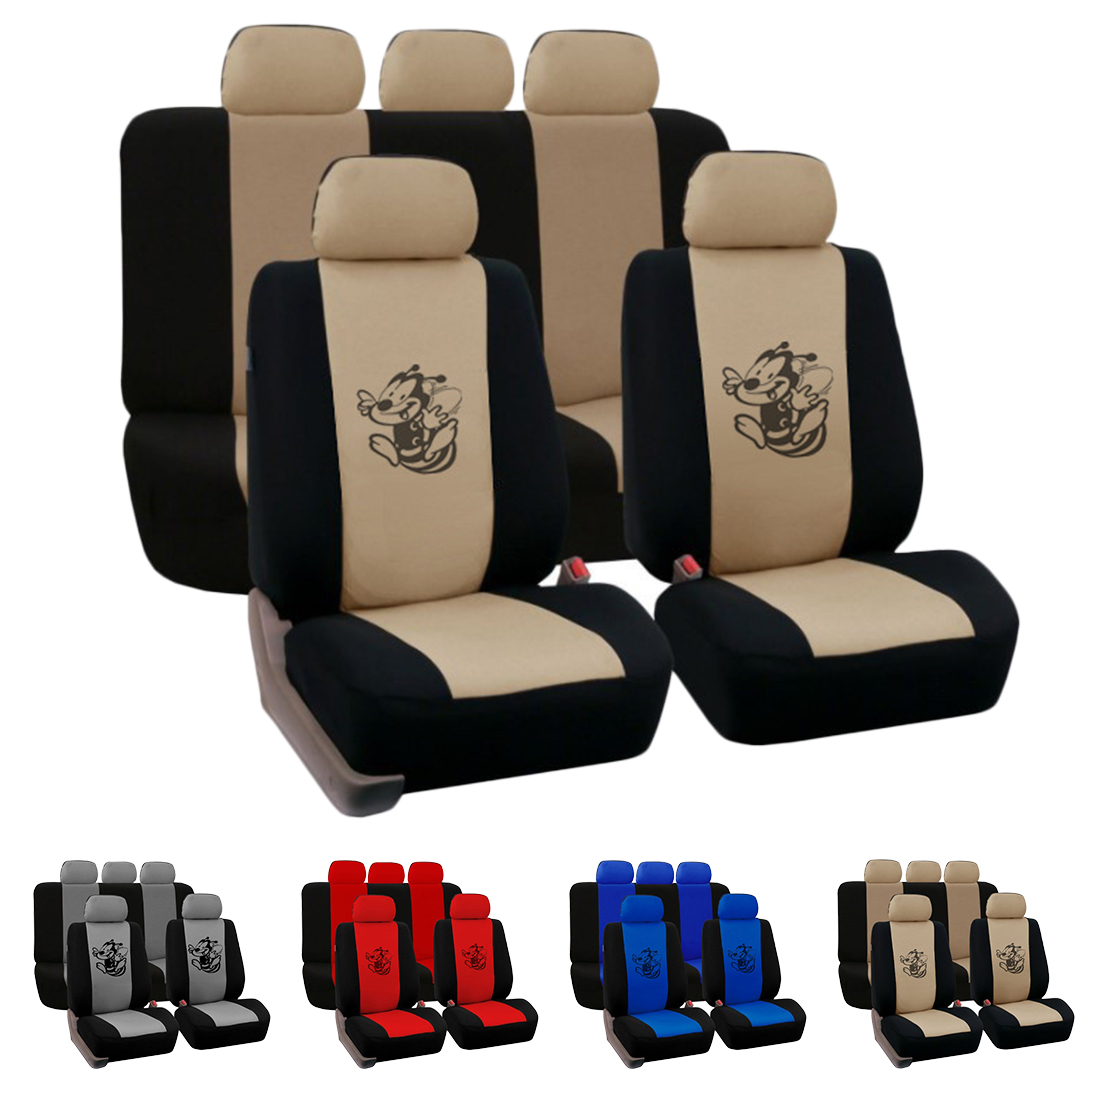 Dewtreetali Universal Automoblies Seat Cover Four Seaons Car Seat Protector Full Set Car Accessories Car-Styling for VW BMW AUDI dewtreetali universal automoblies seat cover four seaons car seat protector full set car accessories car styling for vw bmw audi